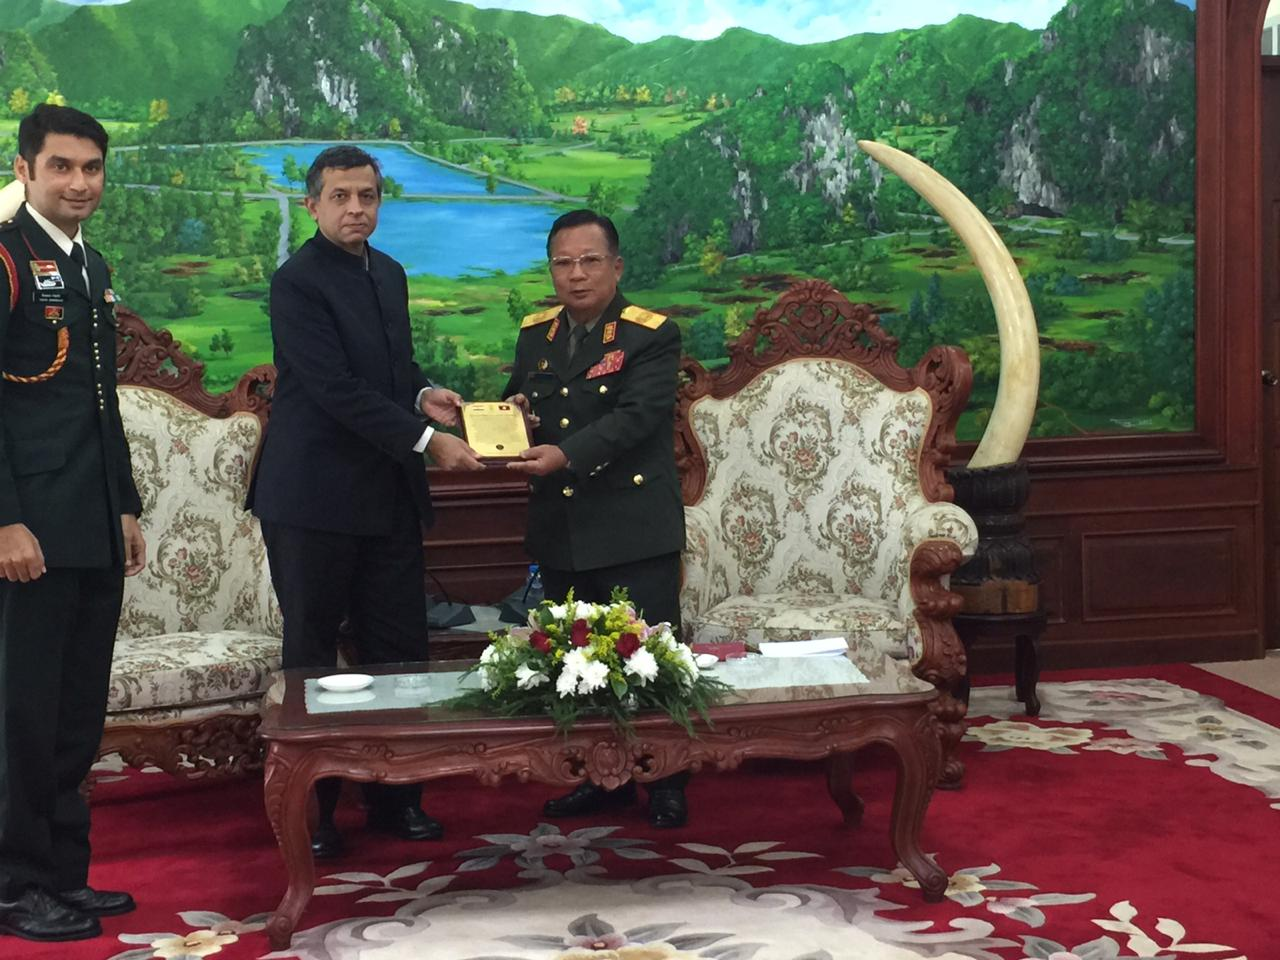 H.E. Mr. Dinkar Asthana, Ambassador of India presents a memento and a journal to H.E. Mr. Chansamone Chanyalath, Hon. Minister of National Defence of Lao PDR, to commemmorate the silver jubilee (25 years) of the Indian Army Training Team in Lao PDR.